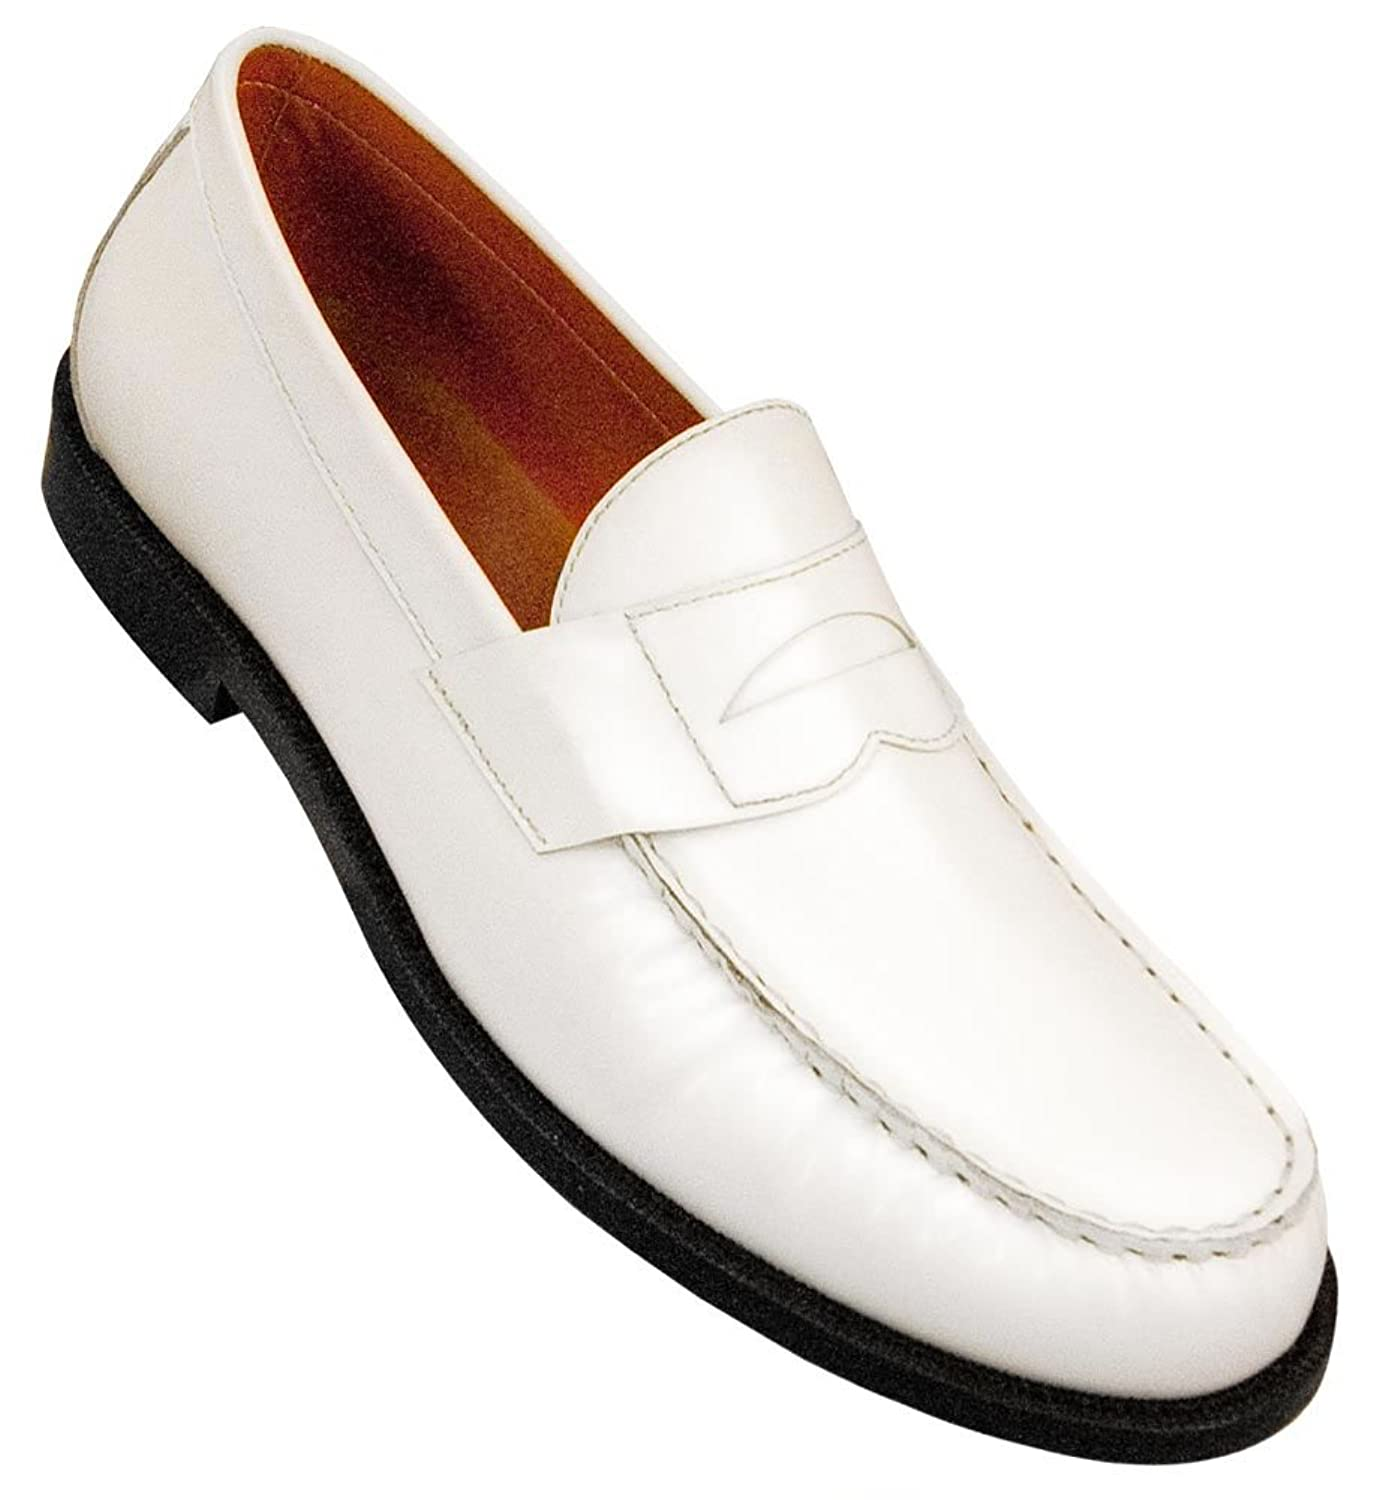 Rockabilly Men's Clothing Aris Allen Mens White Dance Loafers $48.95 AT vintagedancer.com